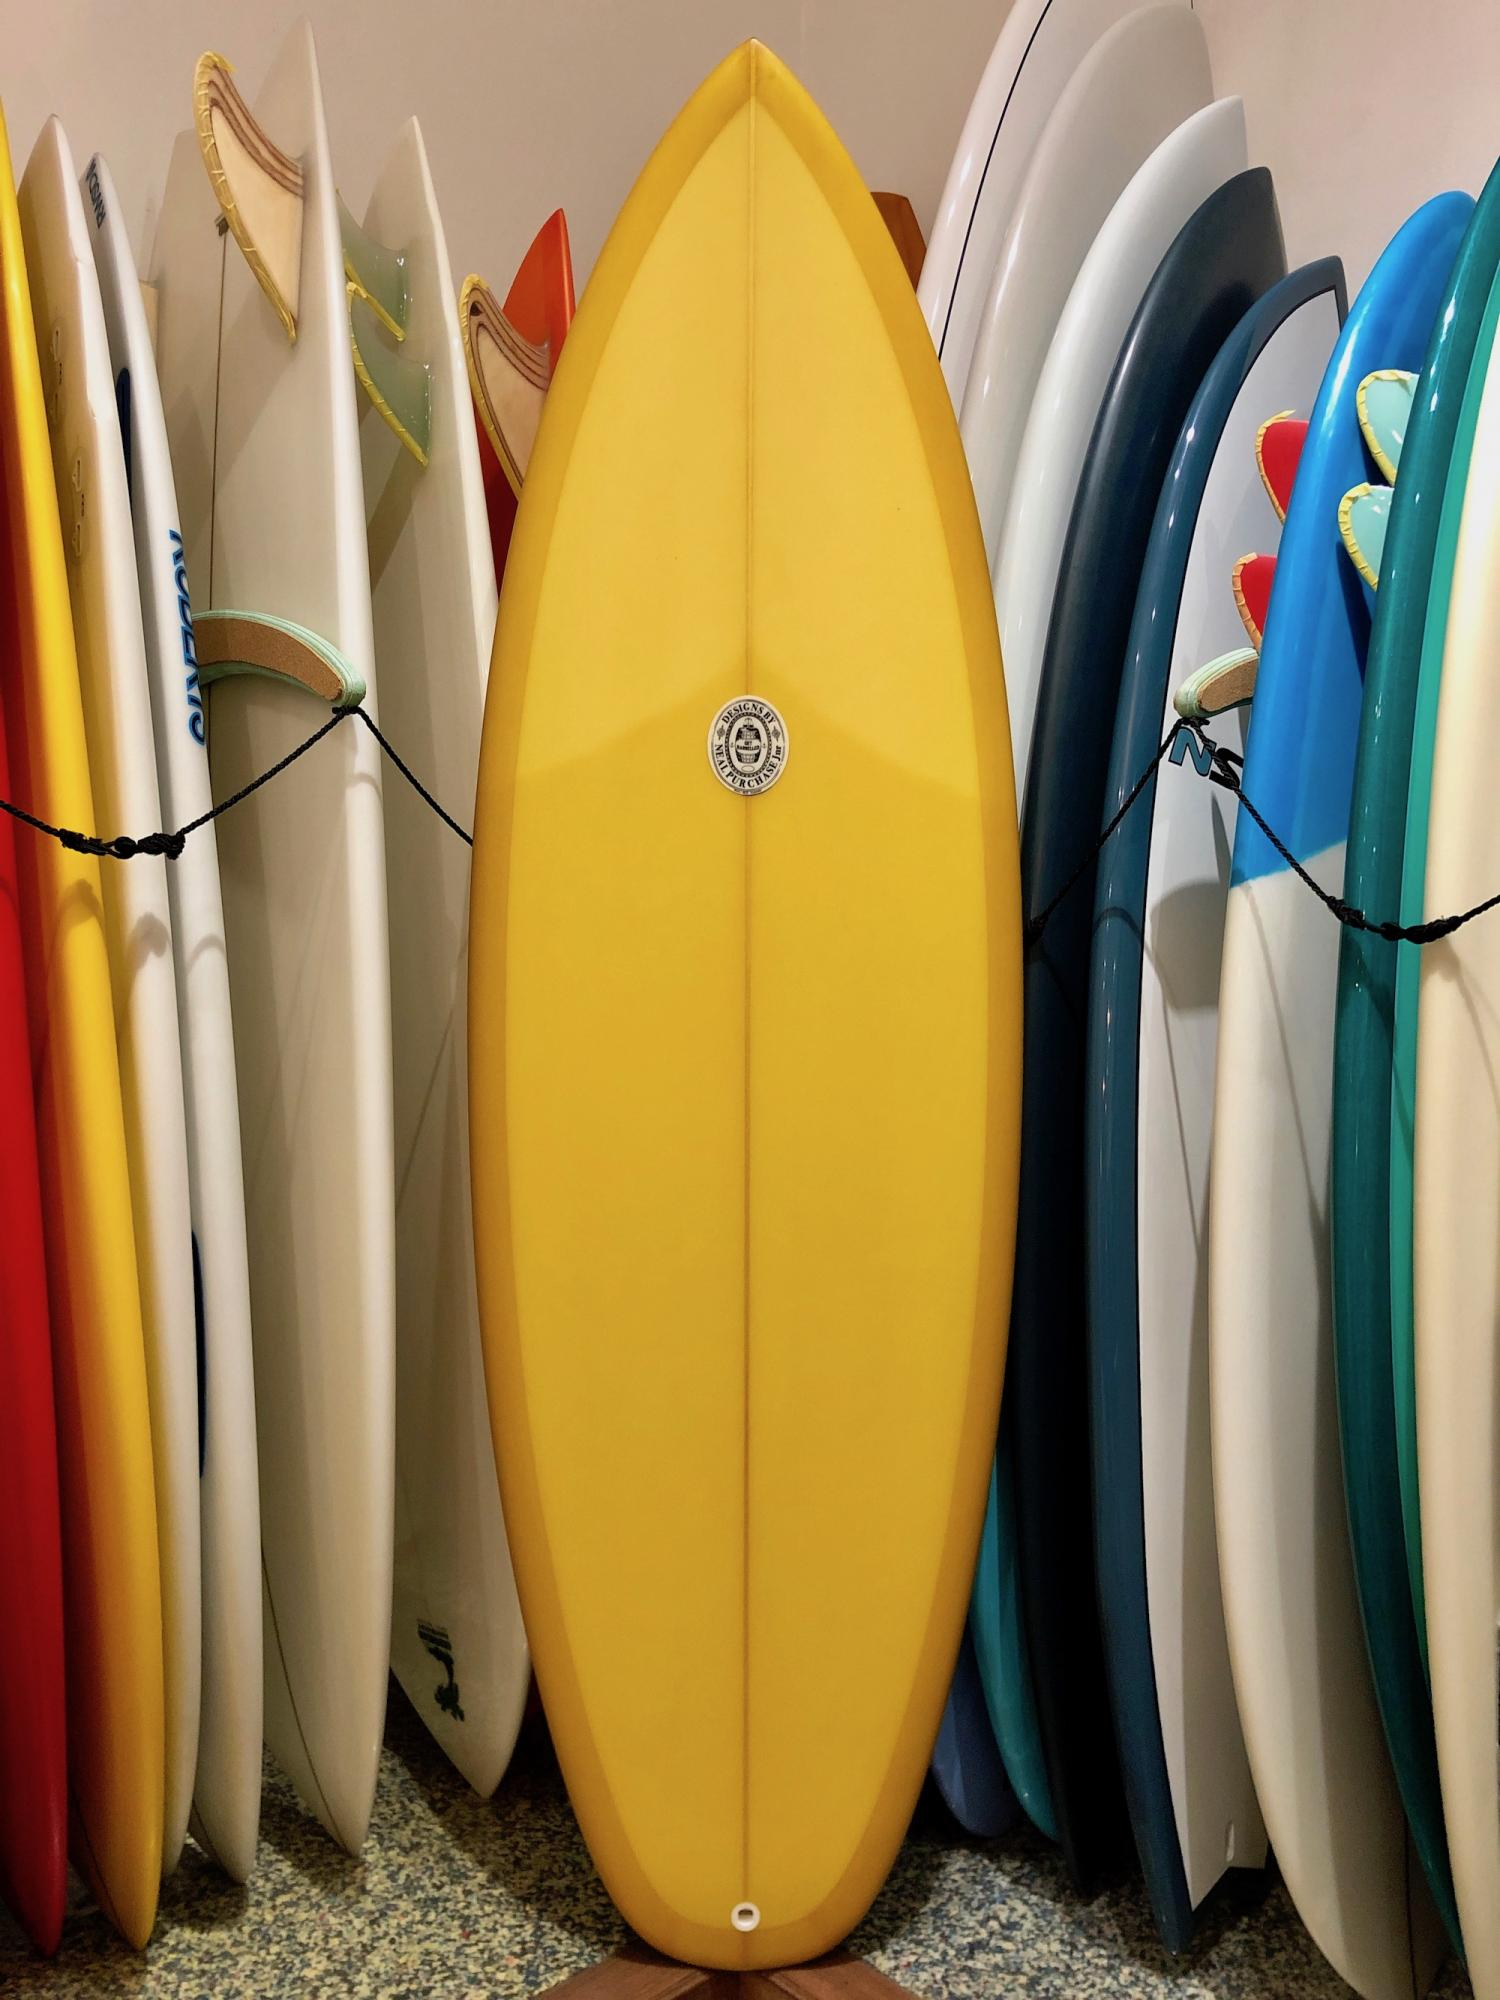 DUO 5.8 [Neal Purchase Jnr Surfboards]